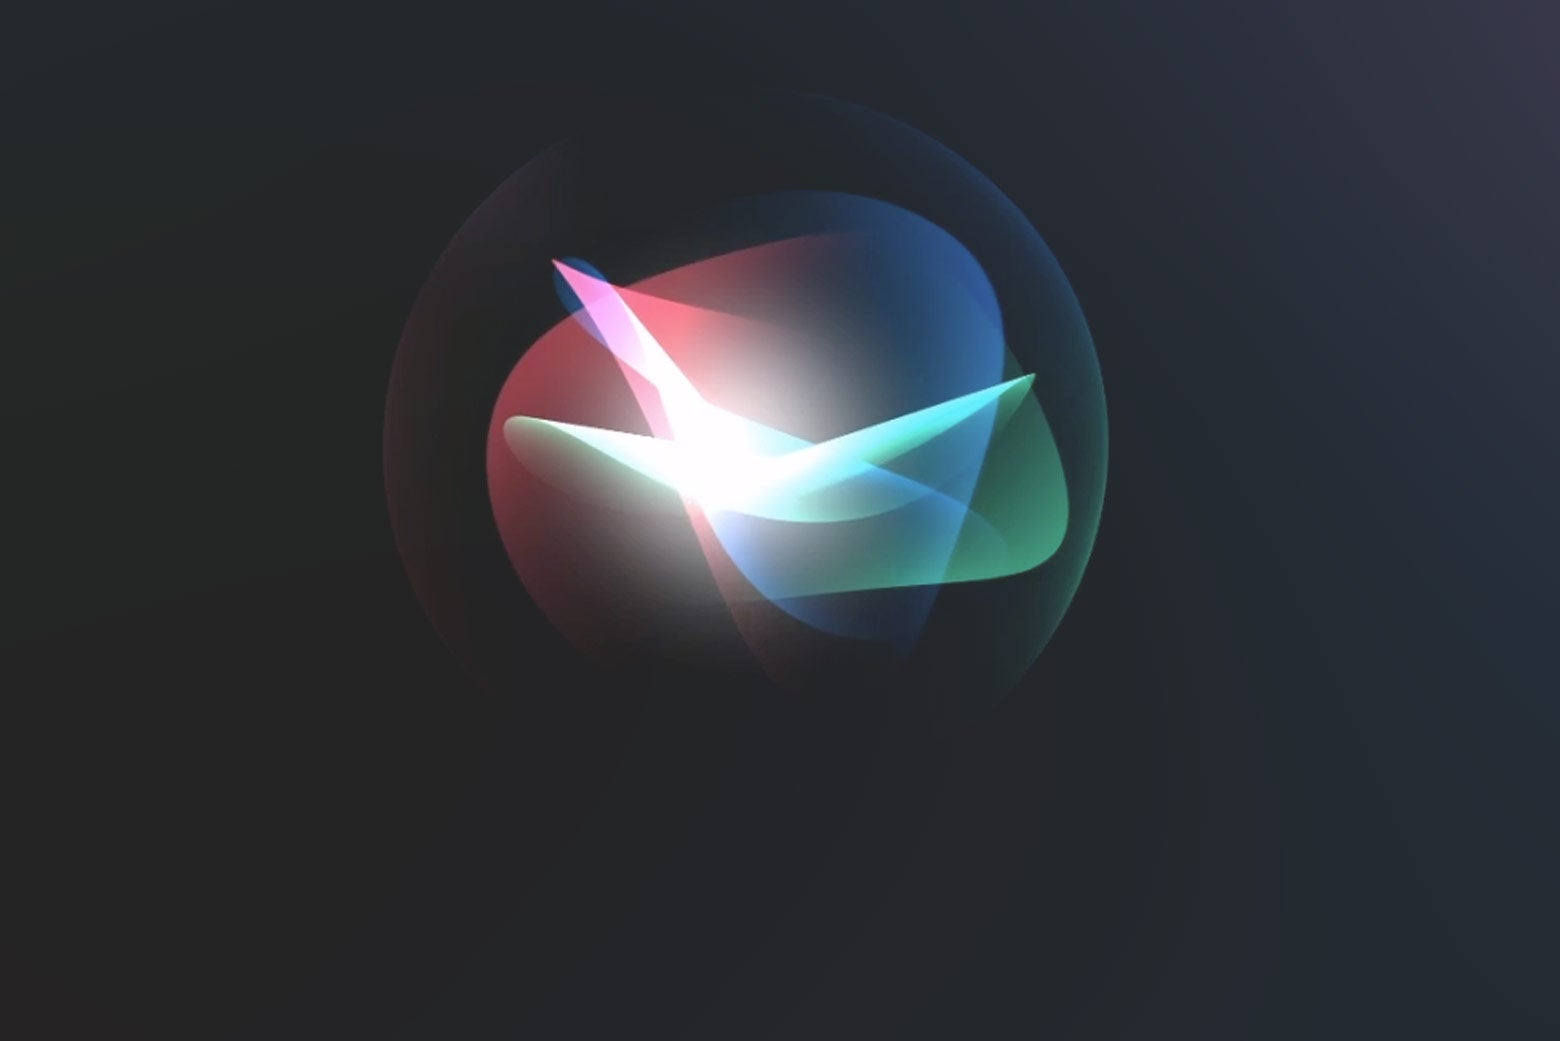 The Siri icon.